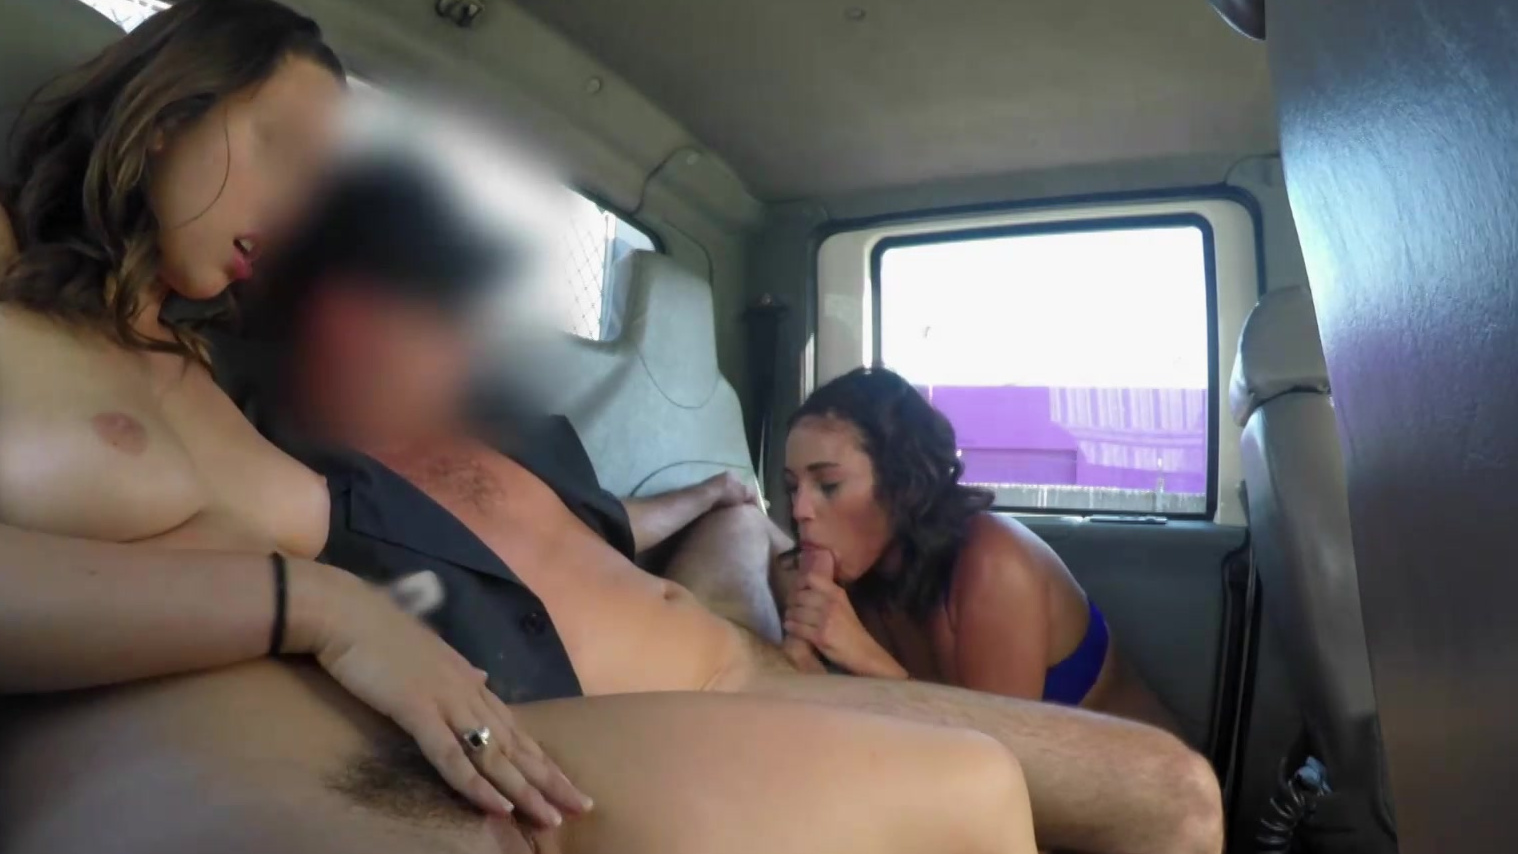 Offering money for sex porn abuse